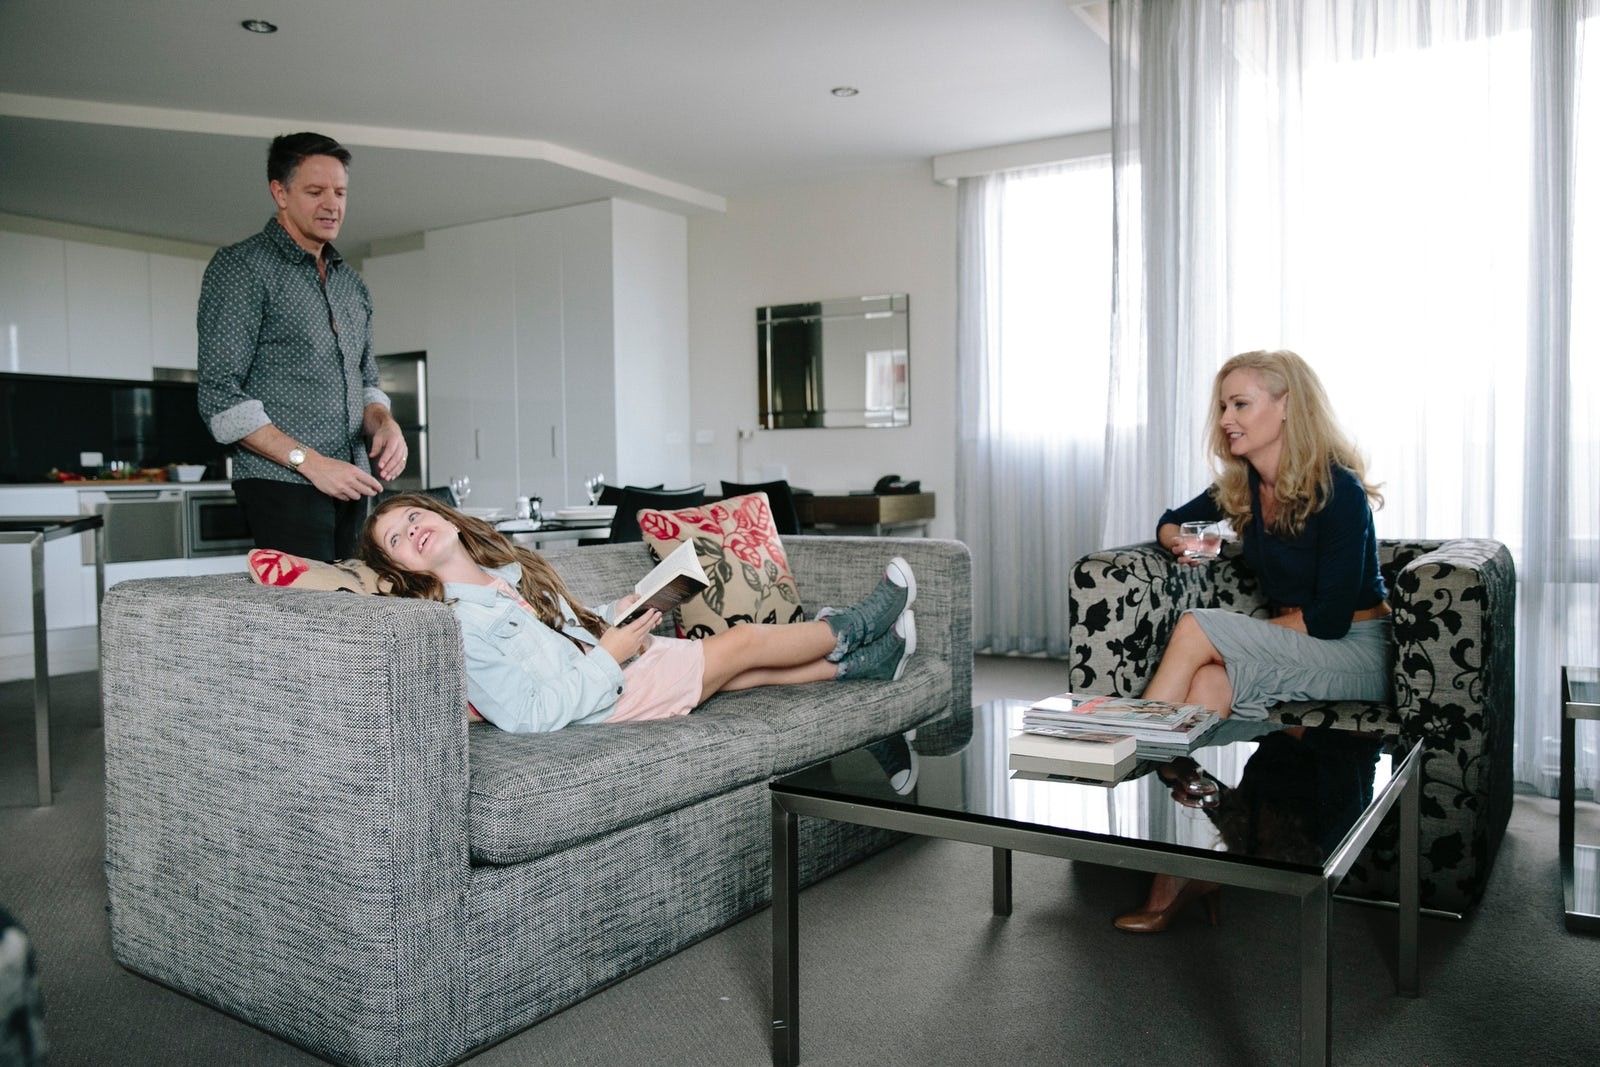 An image of a family spending time together in the Aria Hotel apartments on Dooring Street